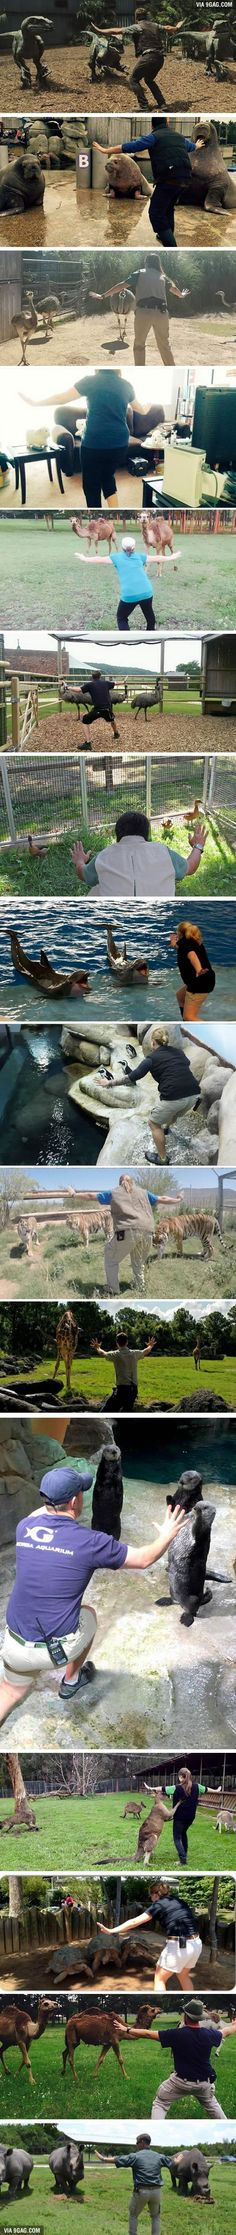 Zookeepers being Chris Pratt. Apparently this is a thing now.